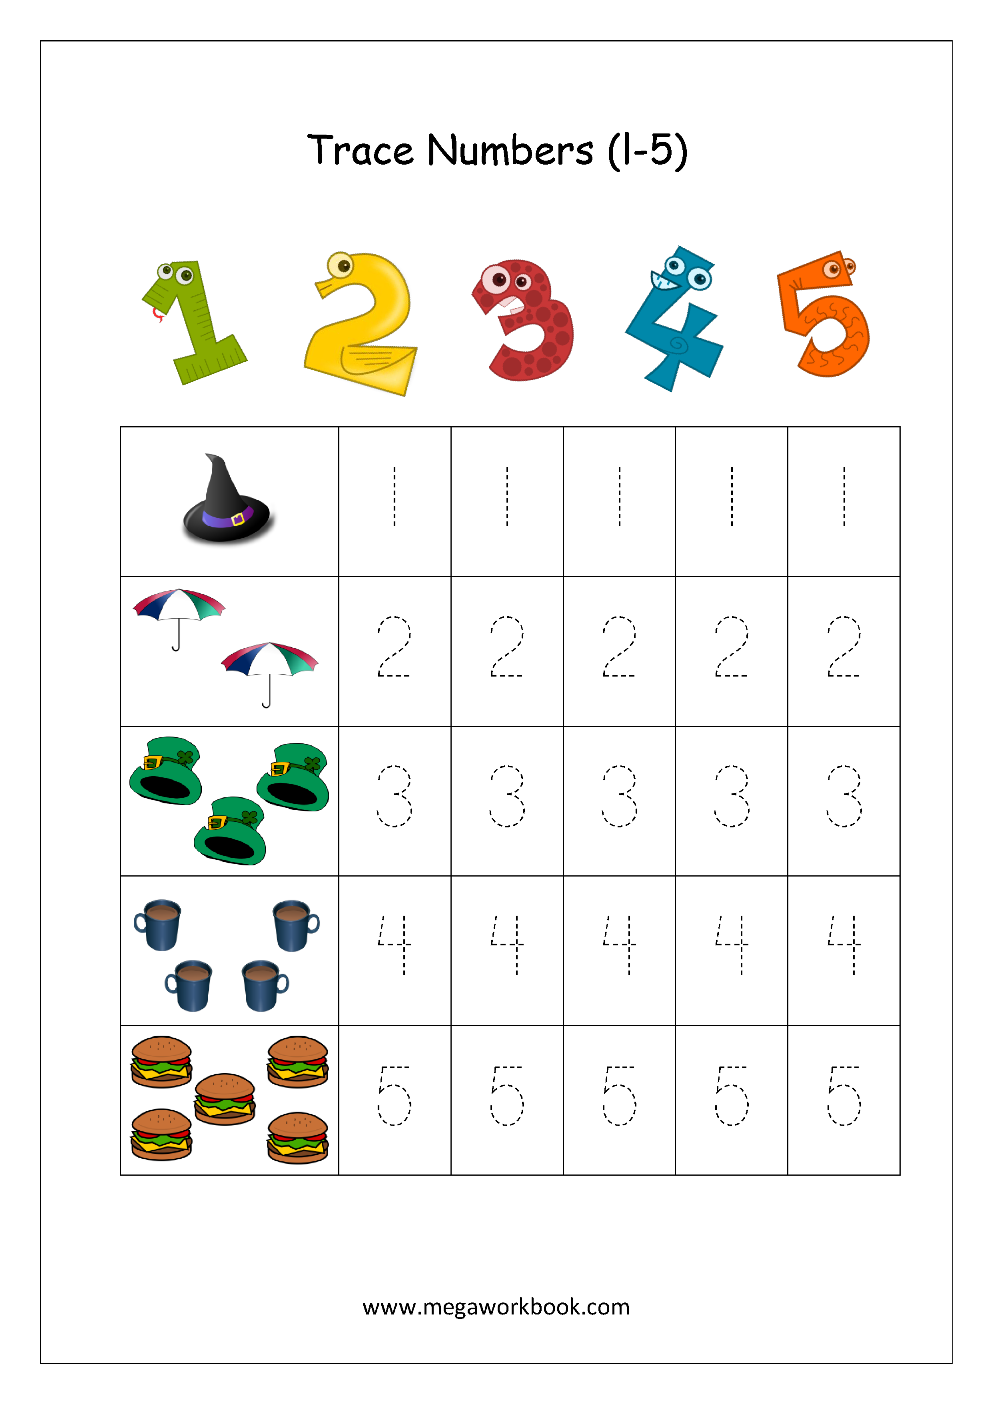 Number Tracing Tracing Numbers Number Tracing Worksheets Tracing Numbers 1 To 10 Writing Numbers 1 To 10 Megaworkbook - 24+ Kindergarten Printable Number Tracing Worksheets Images